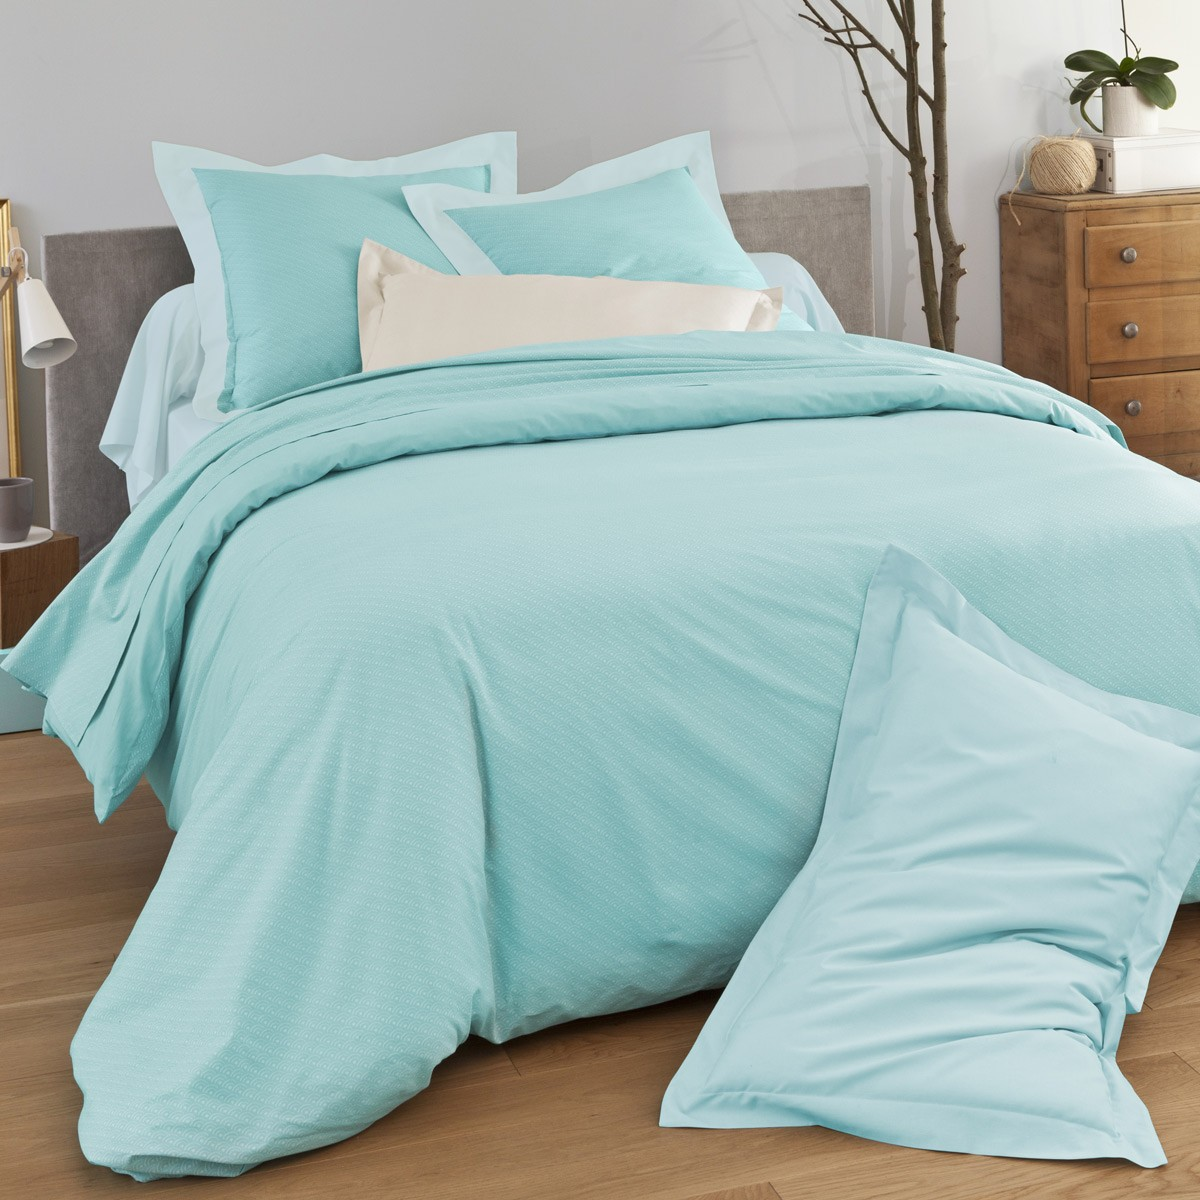 Parure dream blue linge de lit de qualit tradition for Housse couette om